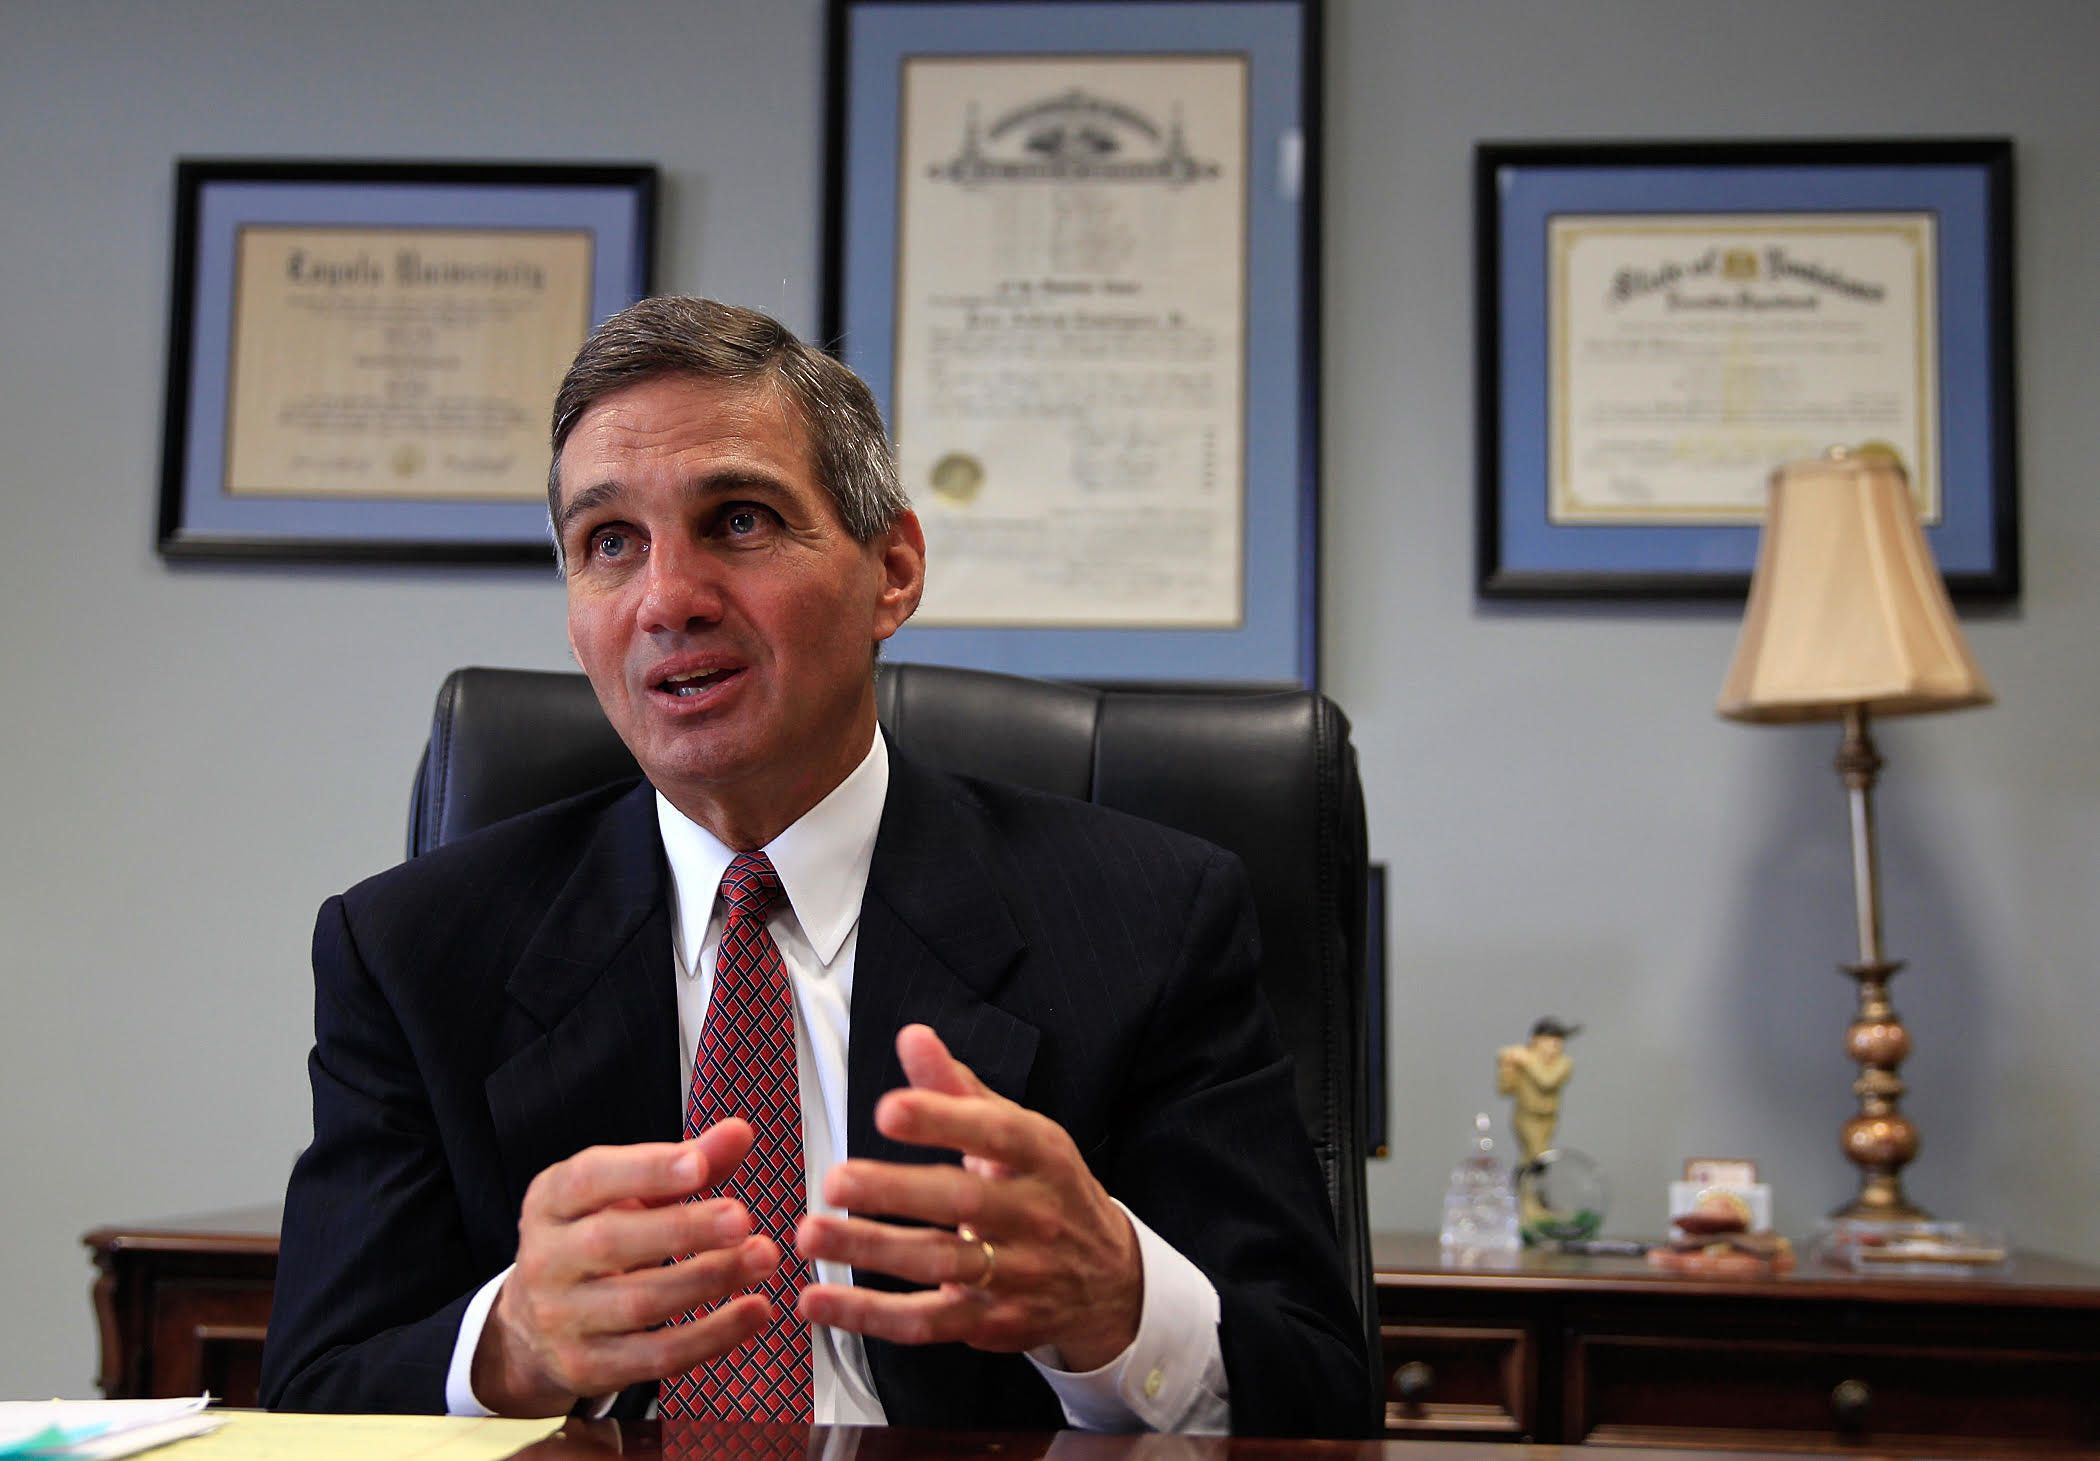 Orleans Parish District Attorney Leon Cannizzaro is interviewed about the Darren Sharper plea deal from his office, Monday, April 6, 2015. (Photo by Ted Jackson, Nola.com | The Times-Picayune)